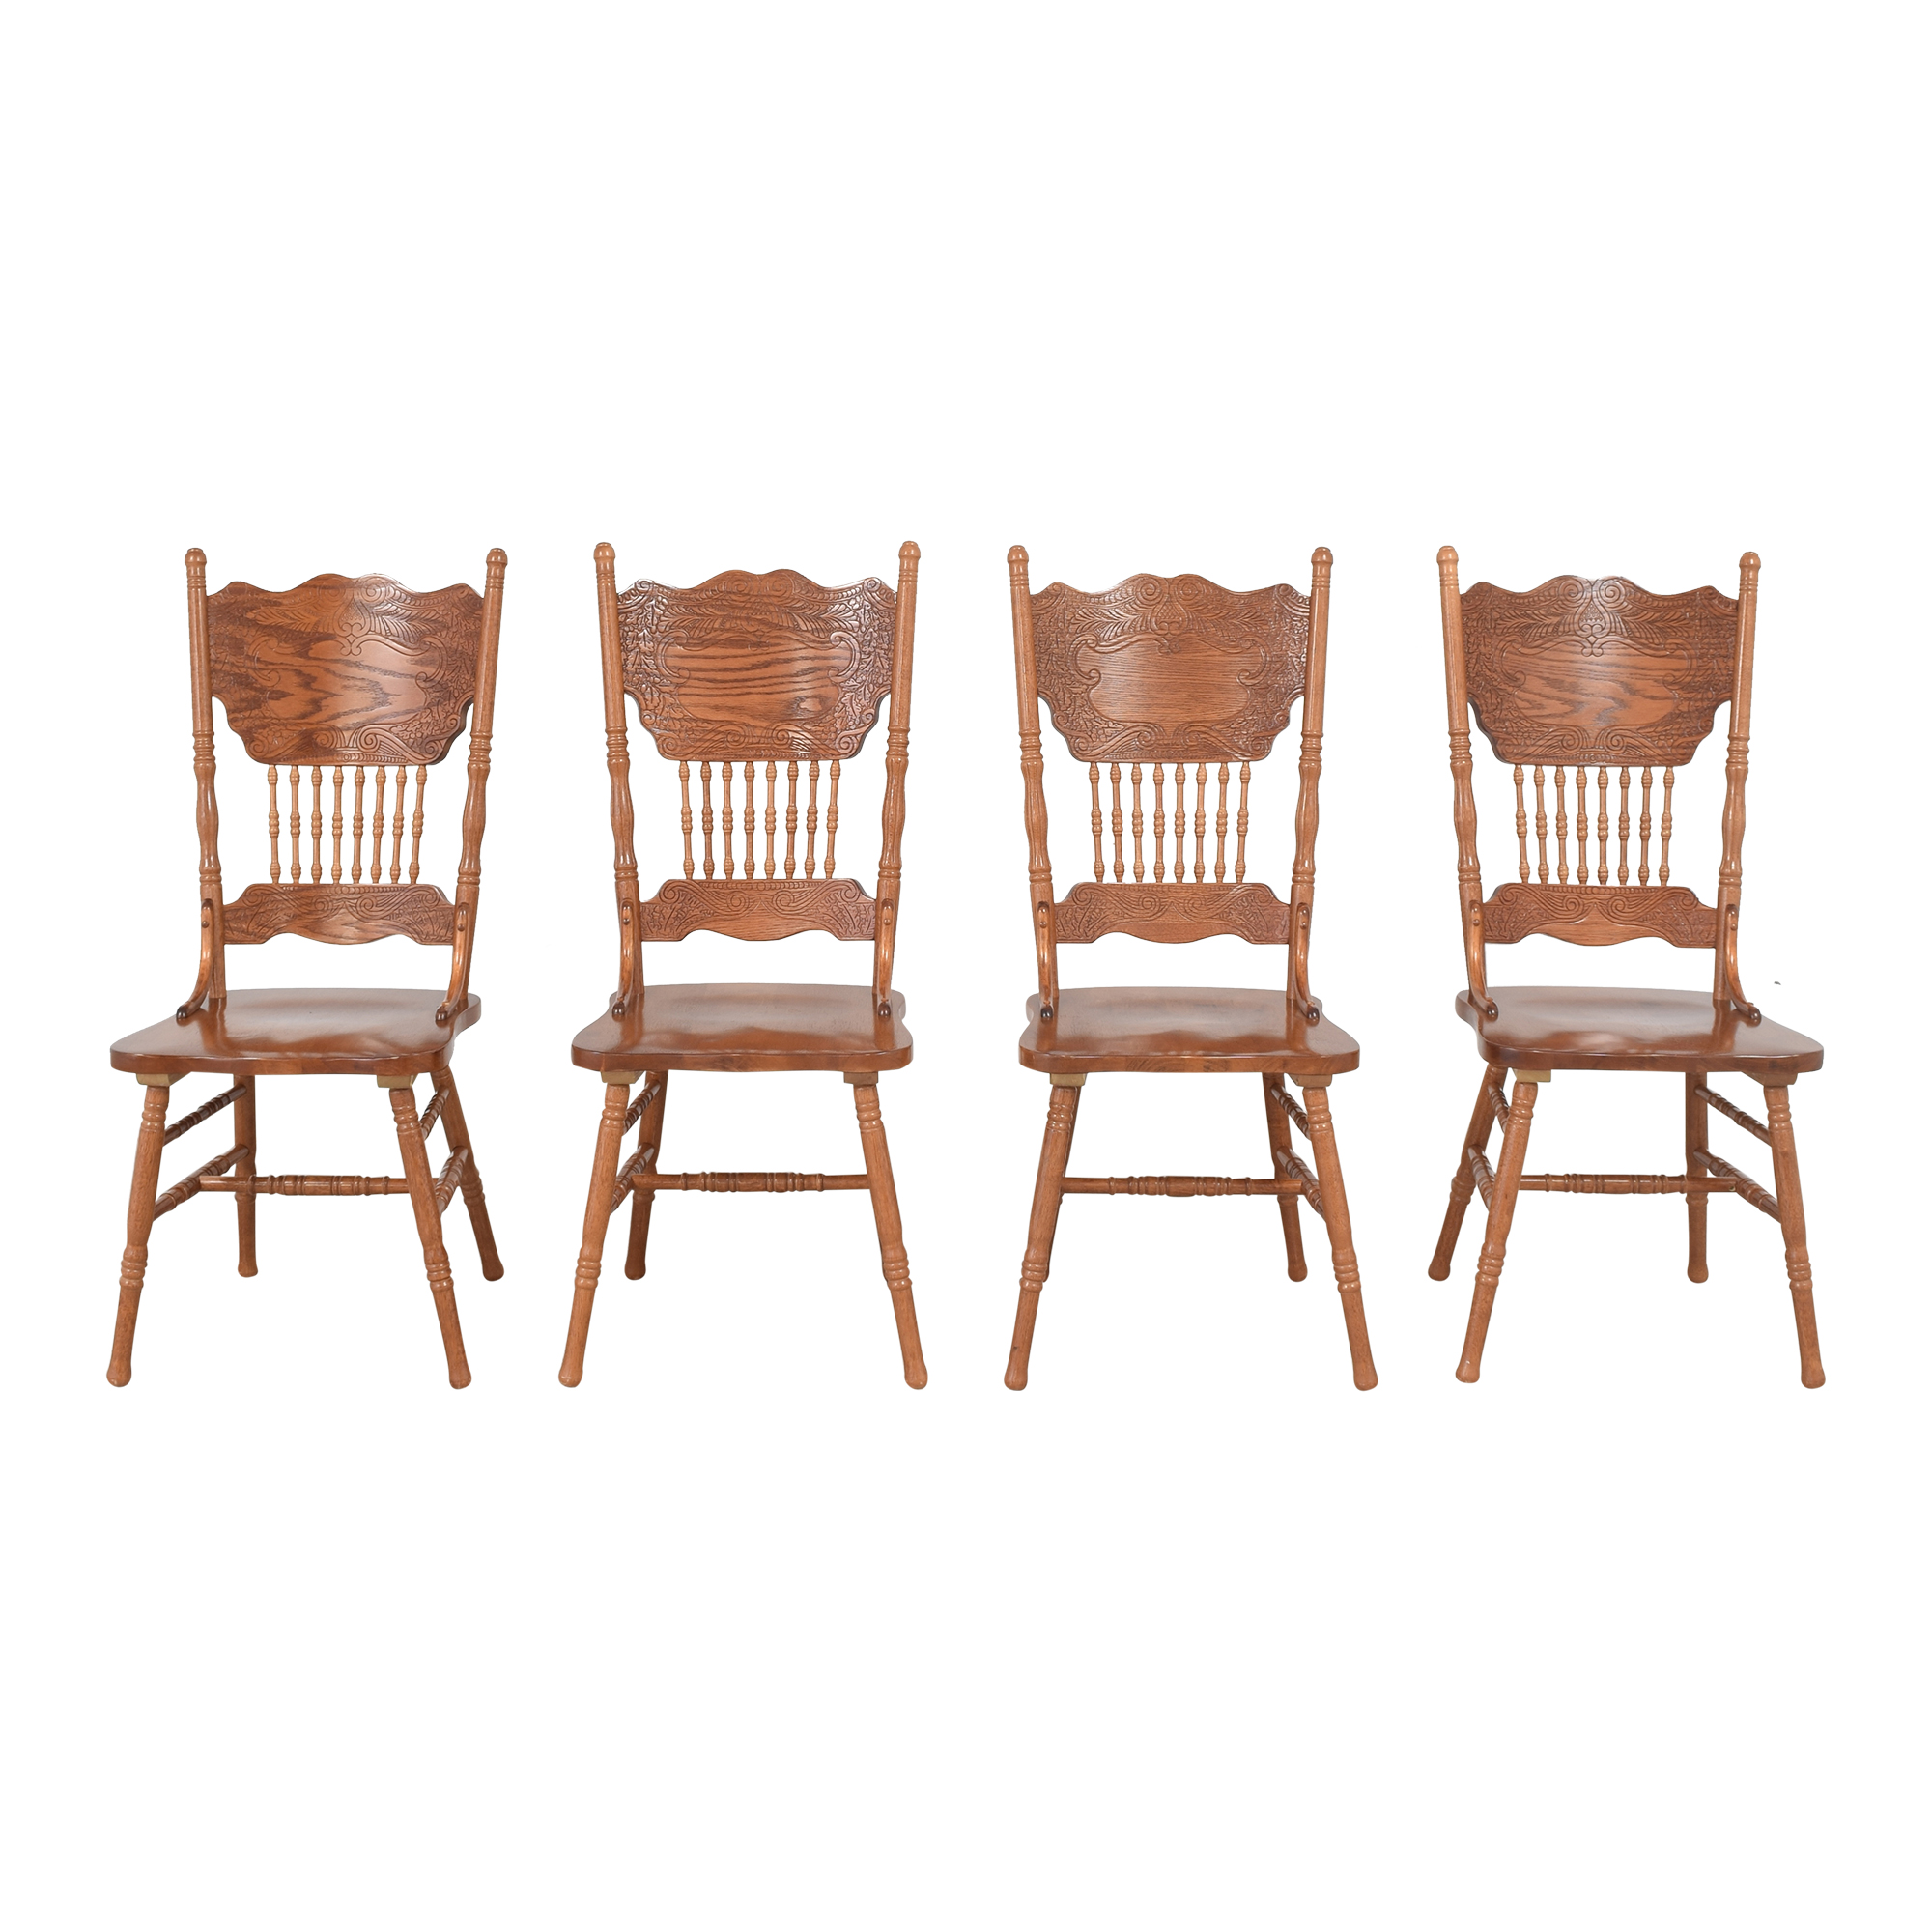 buy Poundex Poundex Pressback Dining Chairs online